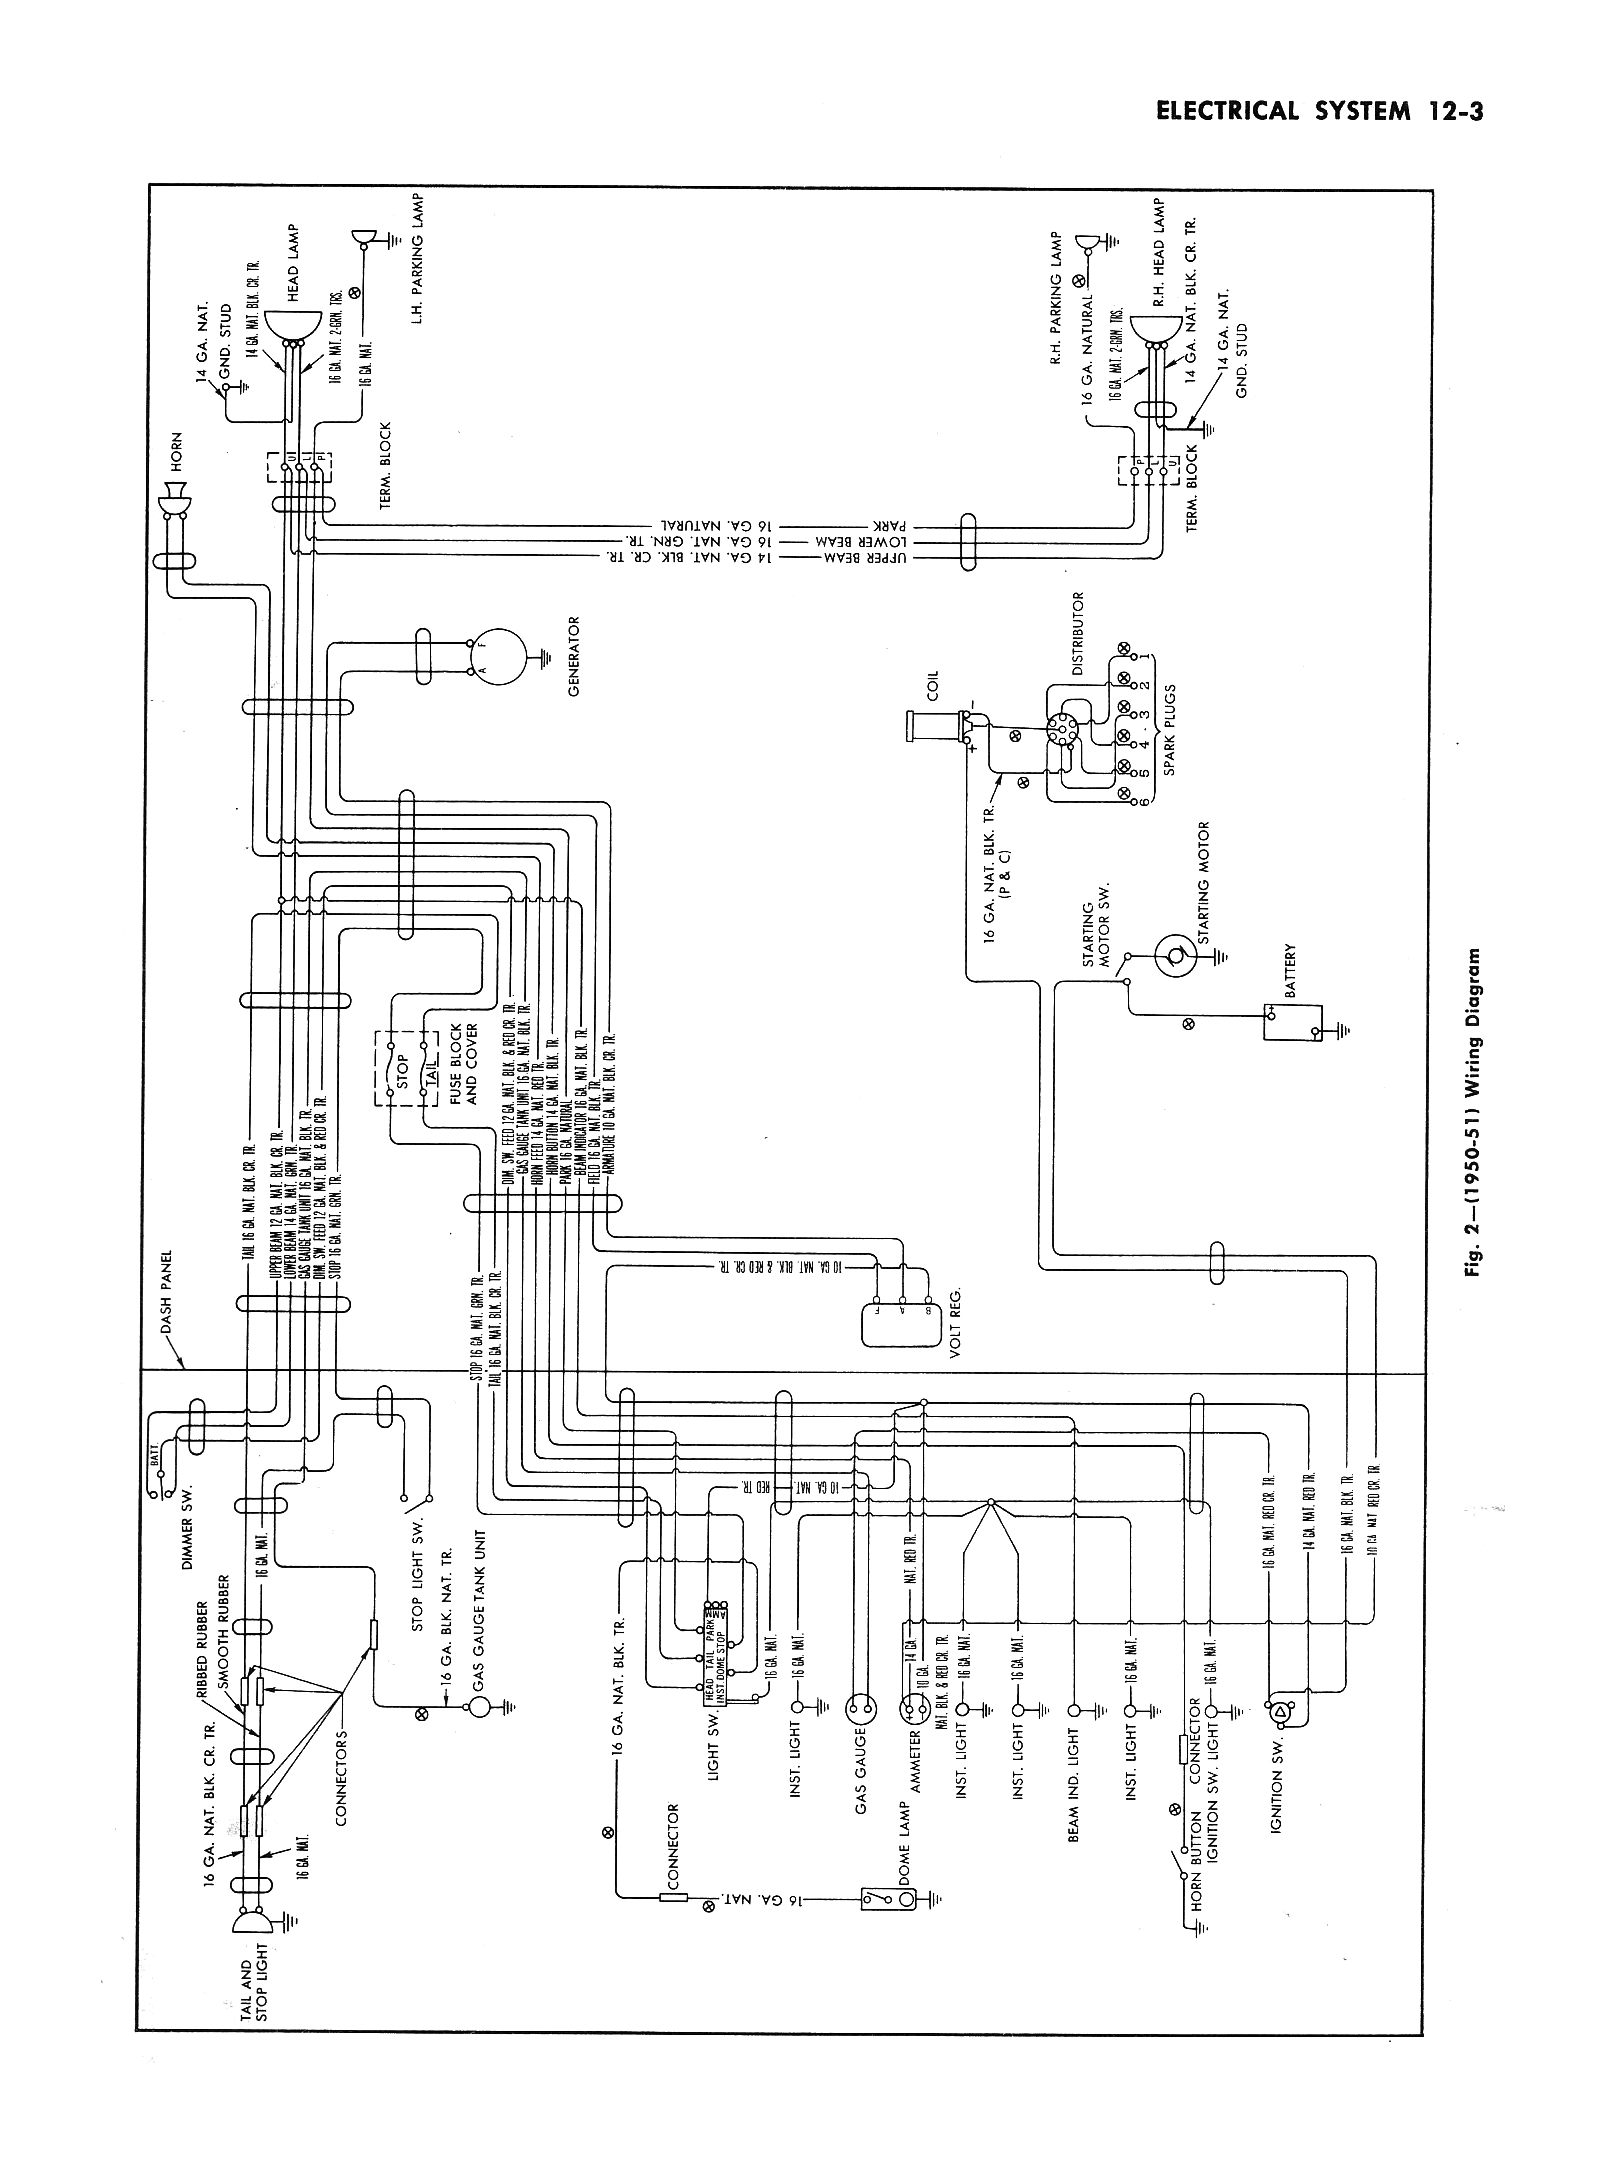 Wiring Chart For Typical 50 S Truck